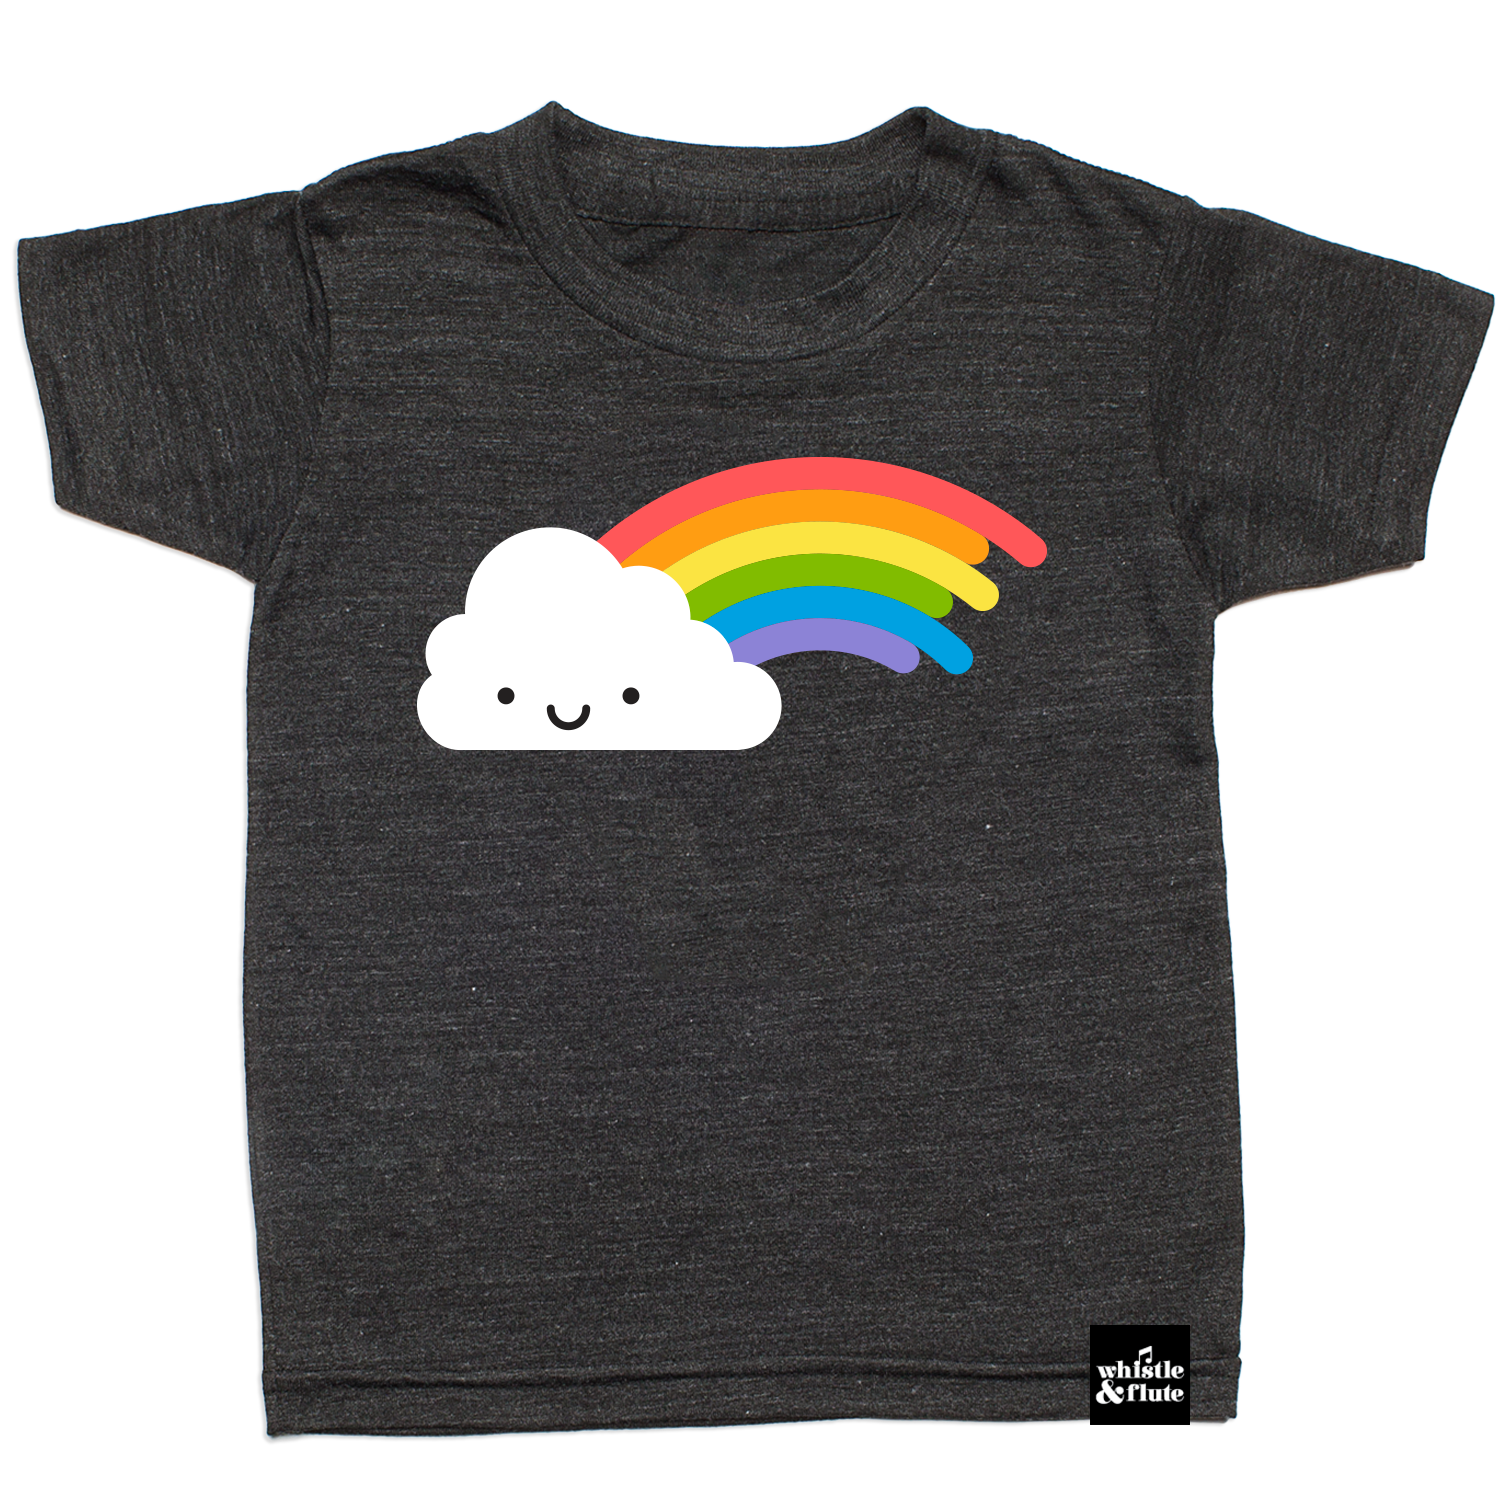 Whistle & Flute Whistle & Flute Rainbow Tee